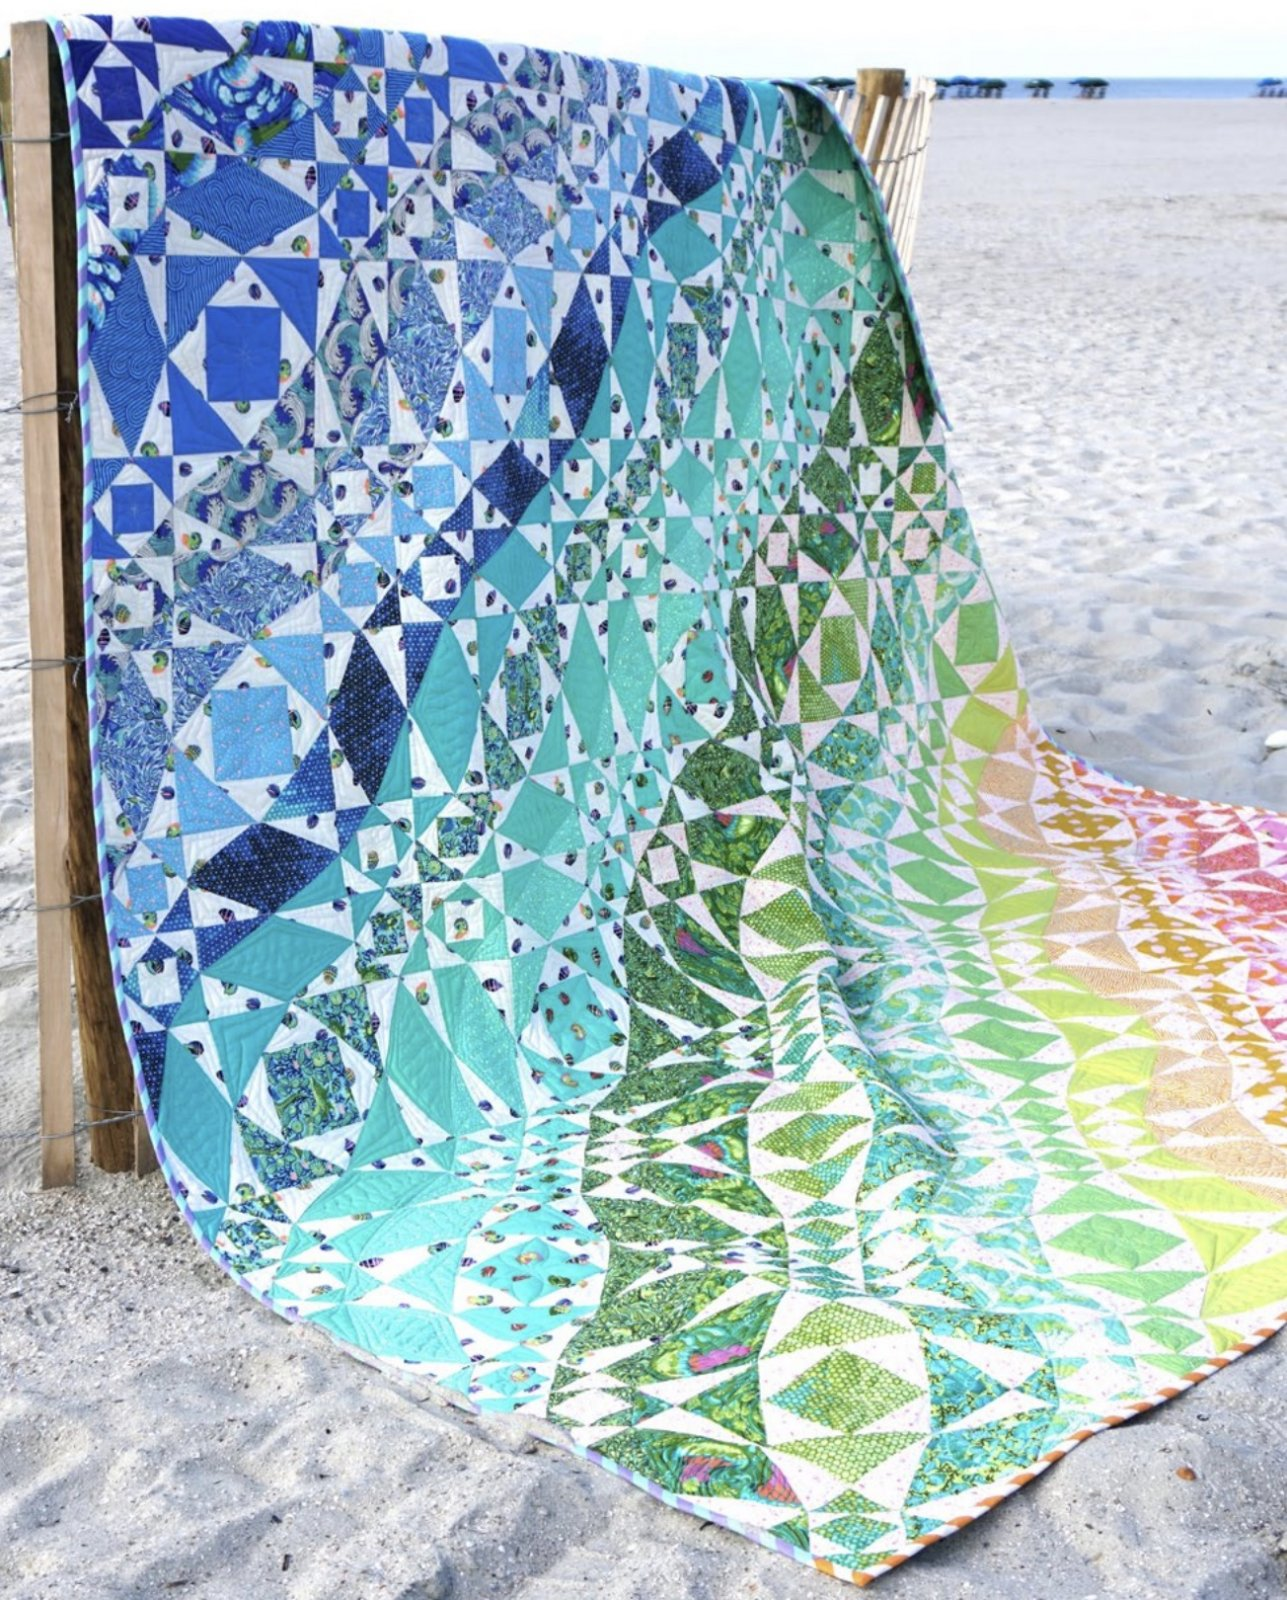 Zuma Rainbow Waves Quilt 80 x 96